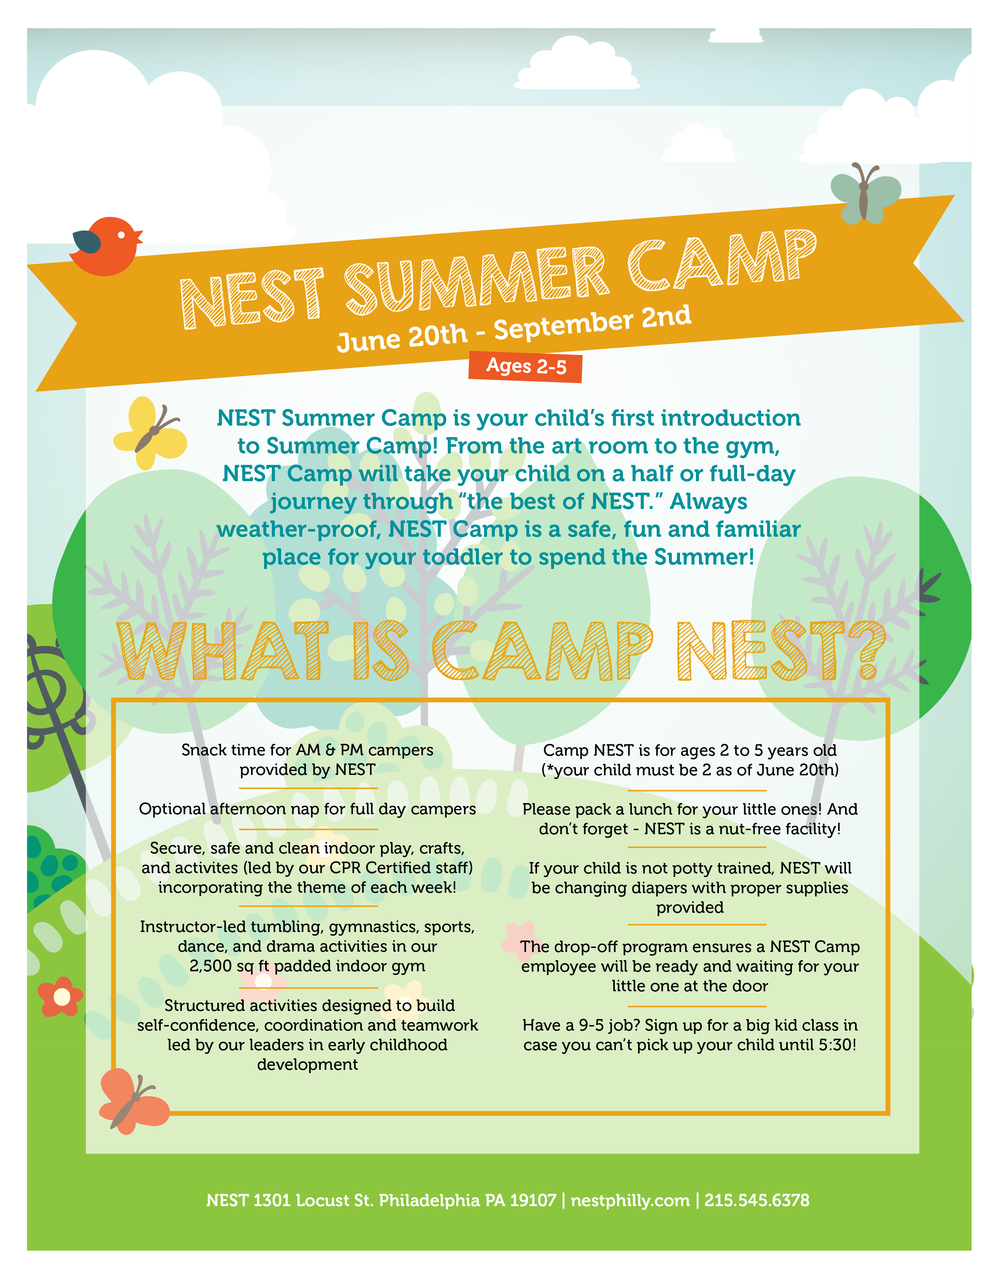 NestSummerCampFlyer_2016-08 copy.jpg